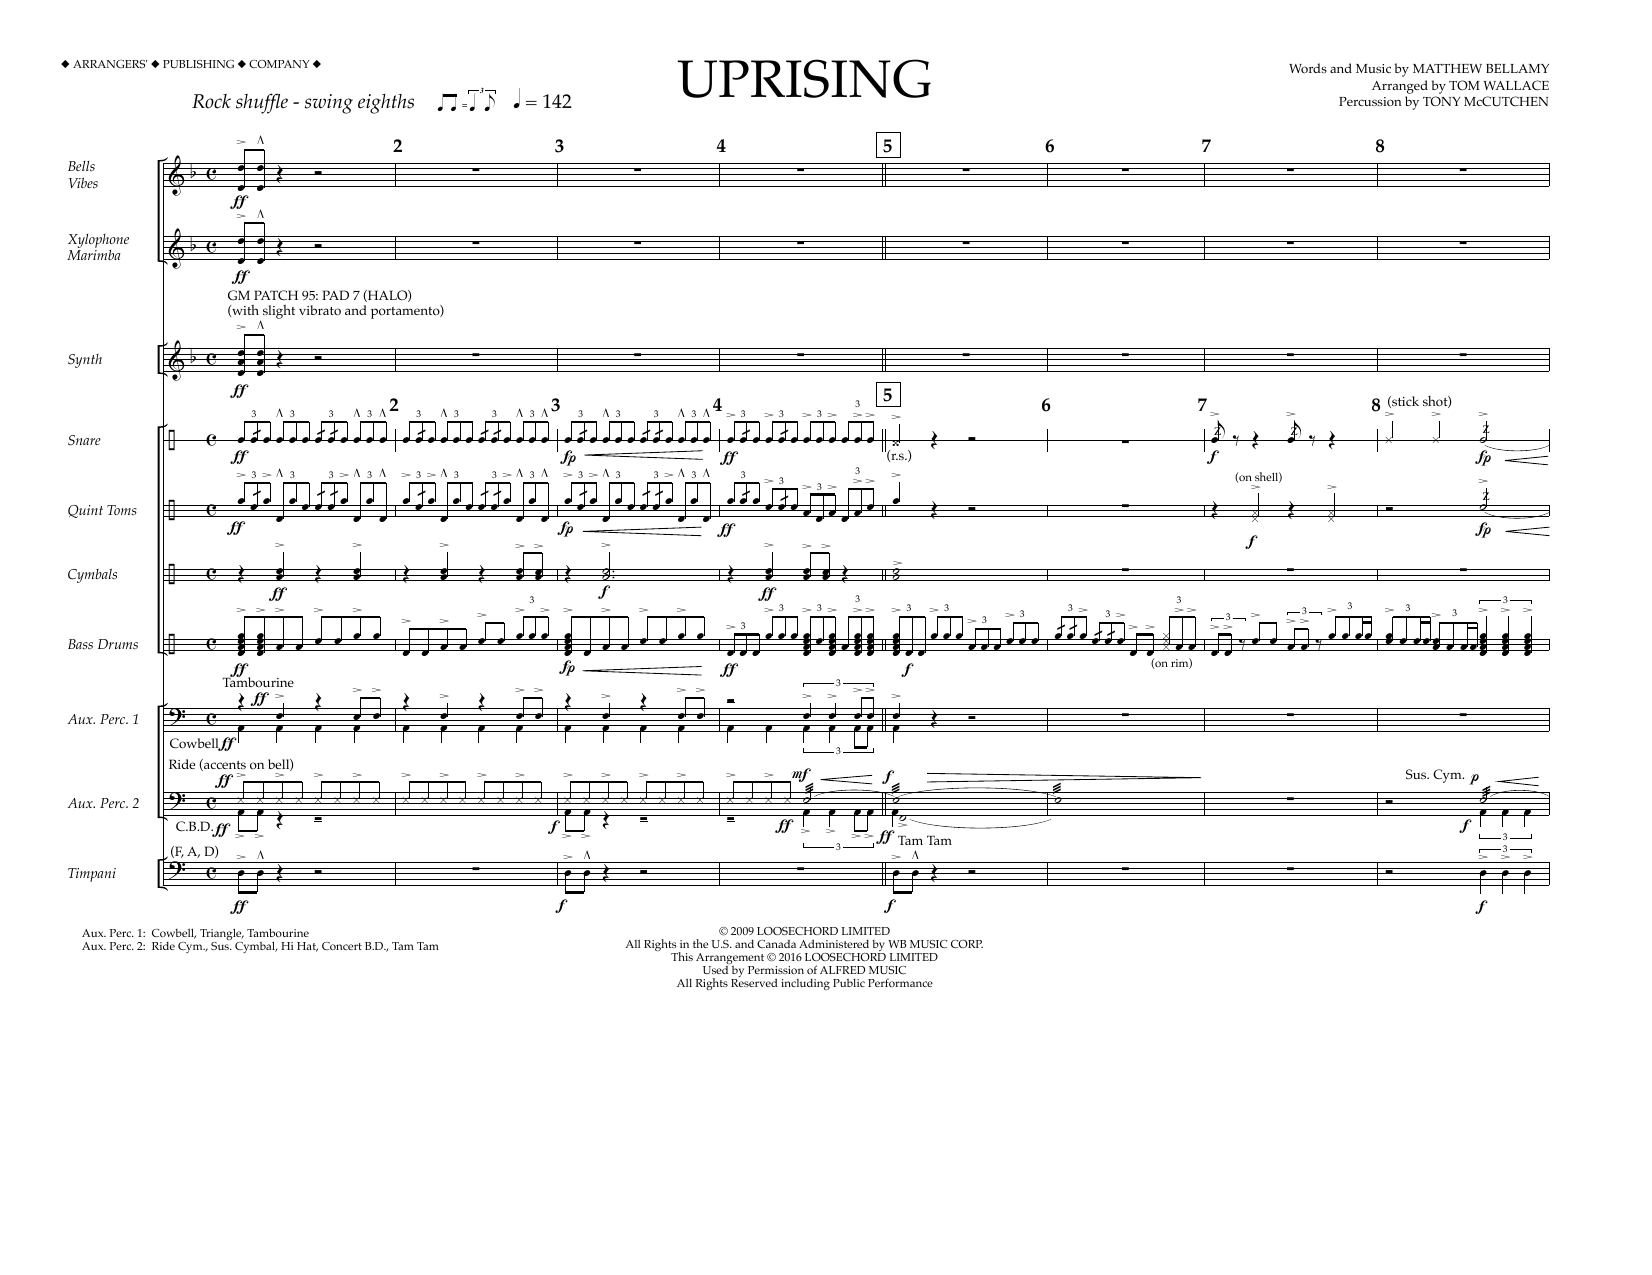 Muse - Uprising - Percussion Score